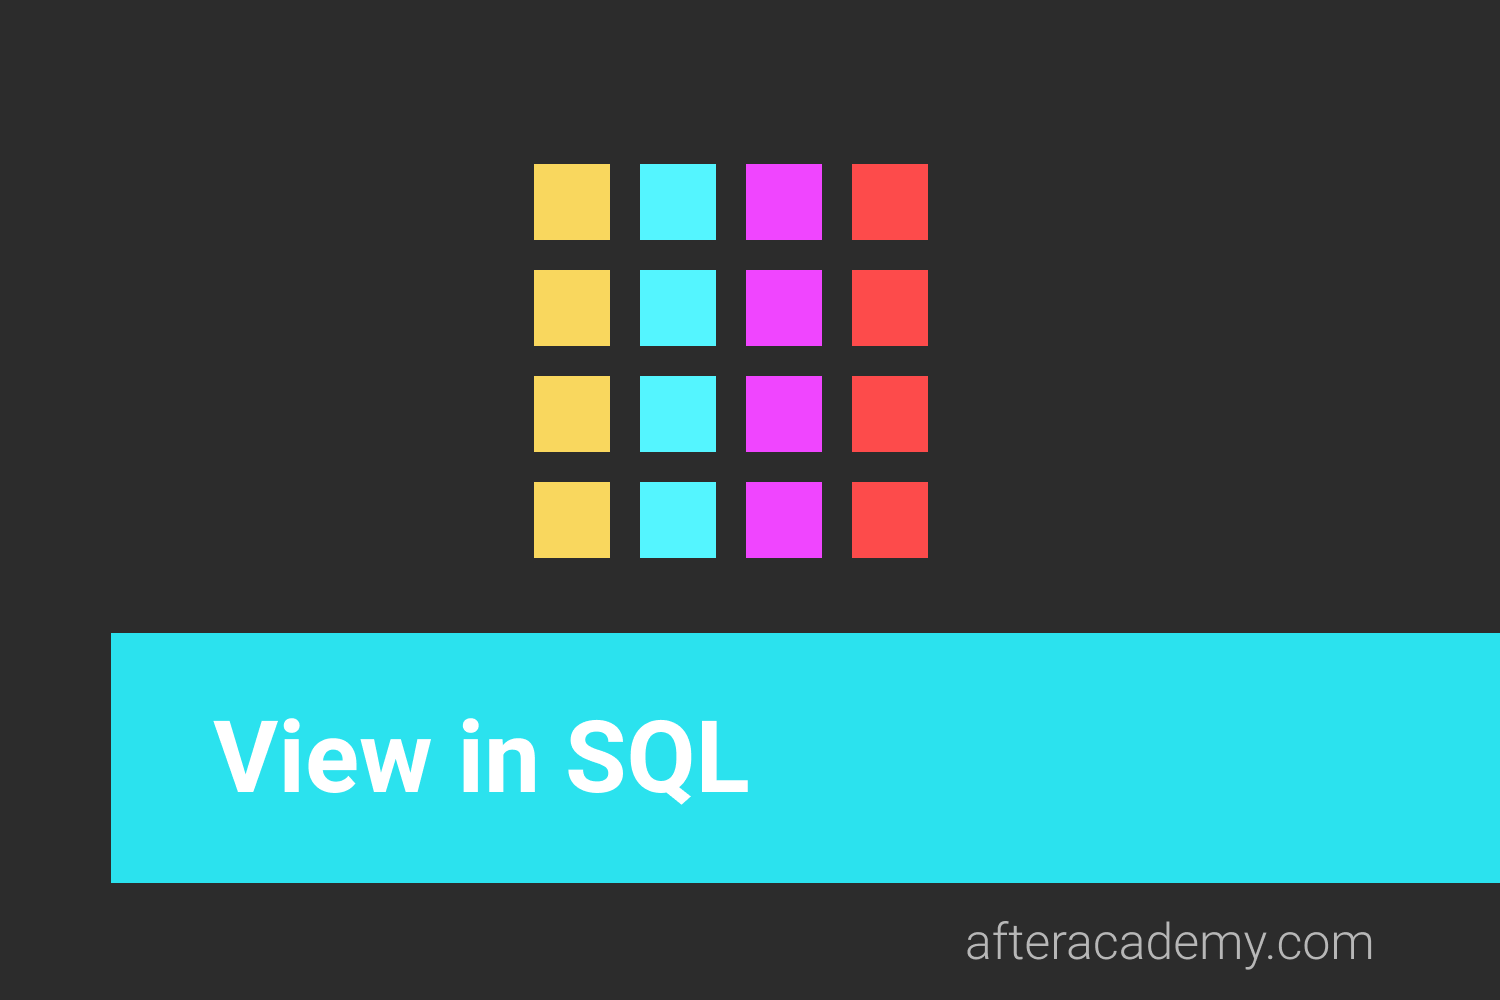 What is View in SQL?